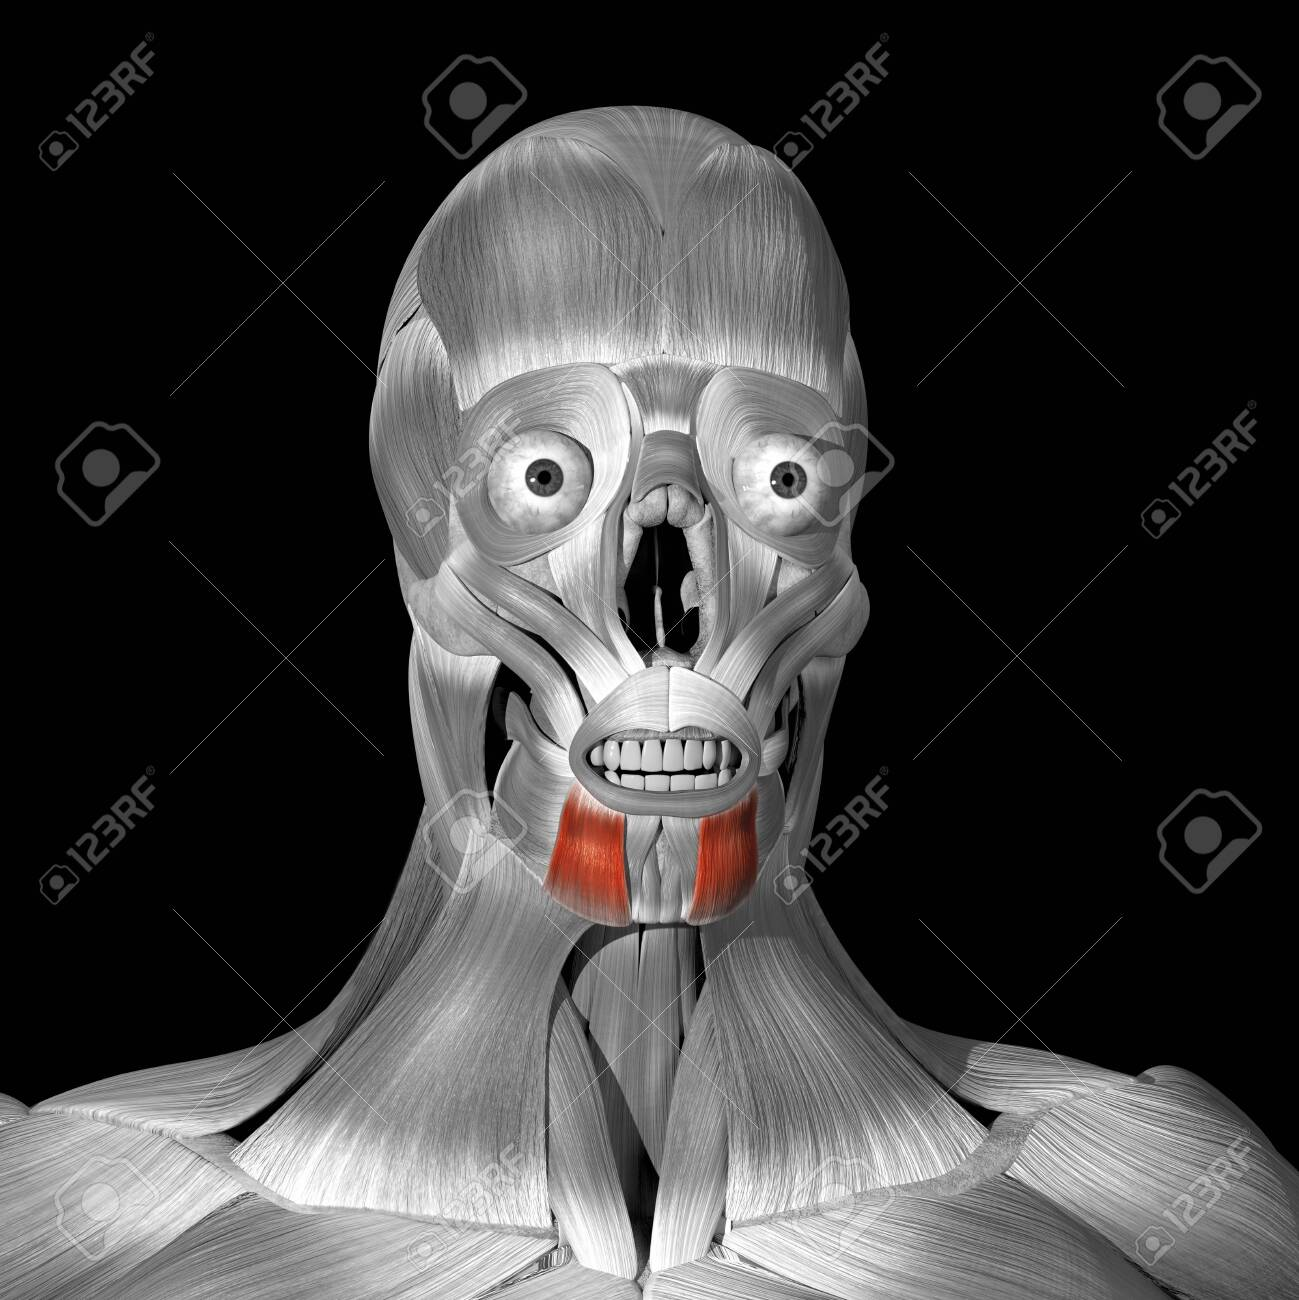 This is a 3d illustration of the depressor anguli oris muscles - 142173664